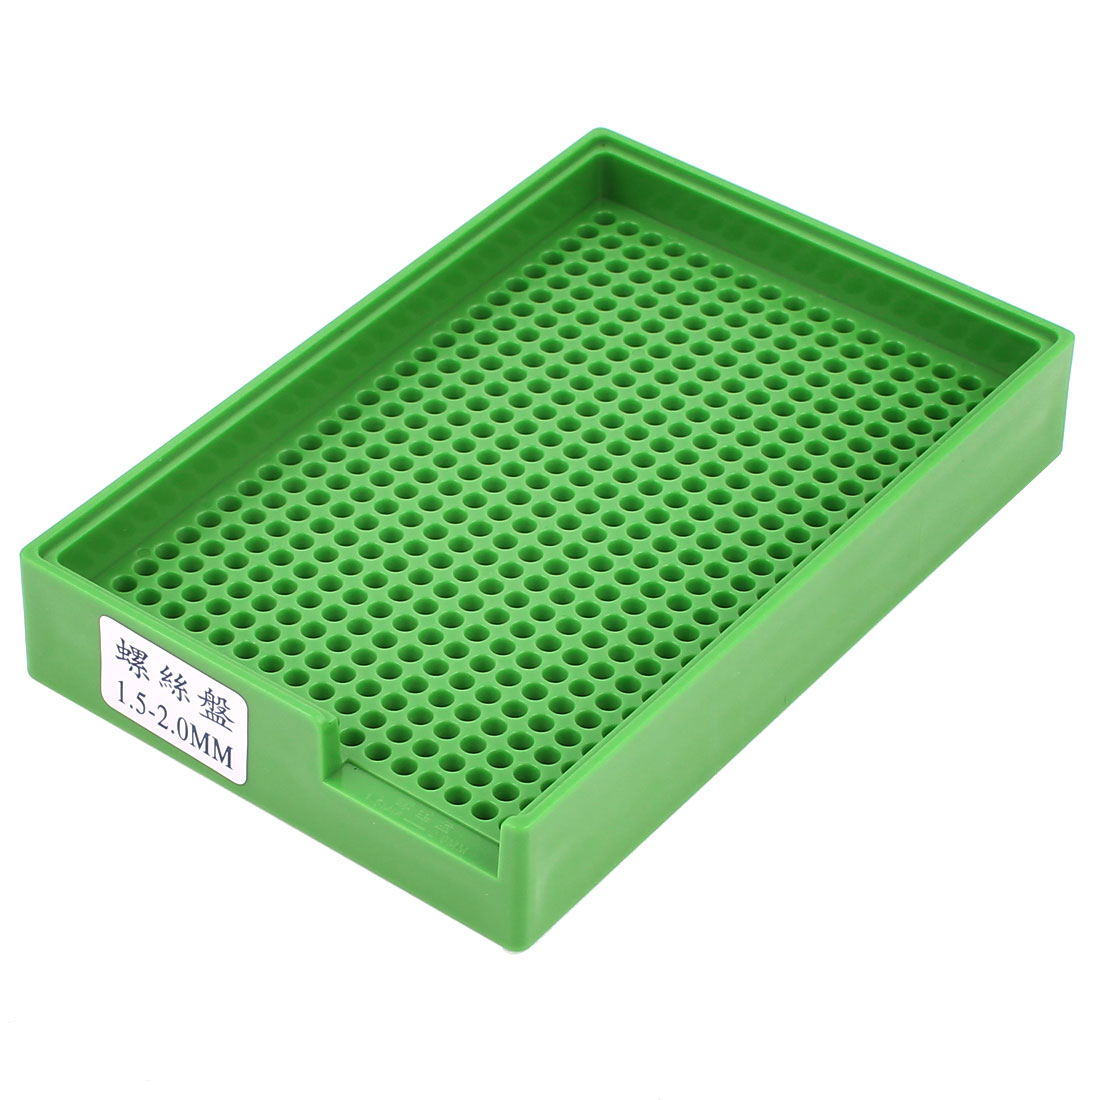 Anti-static Plastic Tray Holder Green 459 Holes for 1.5mm-2.0mm Screws